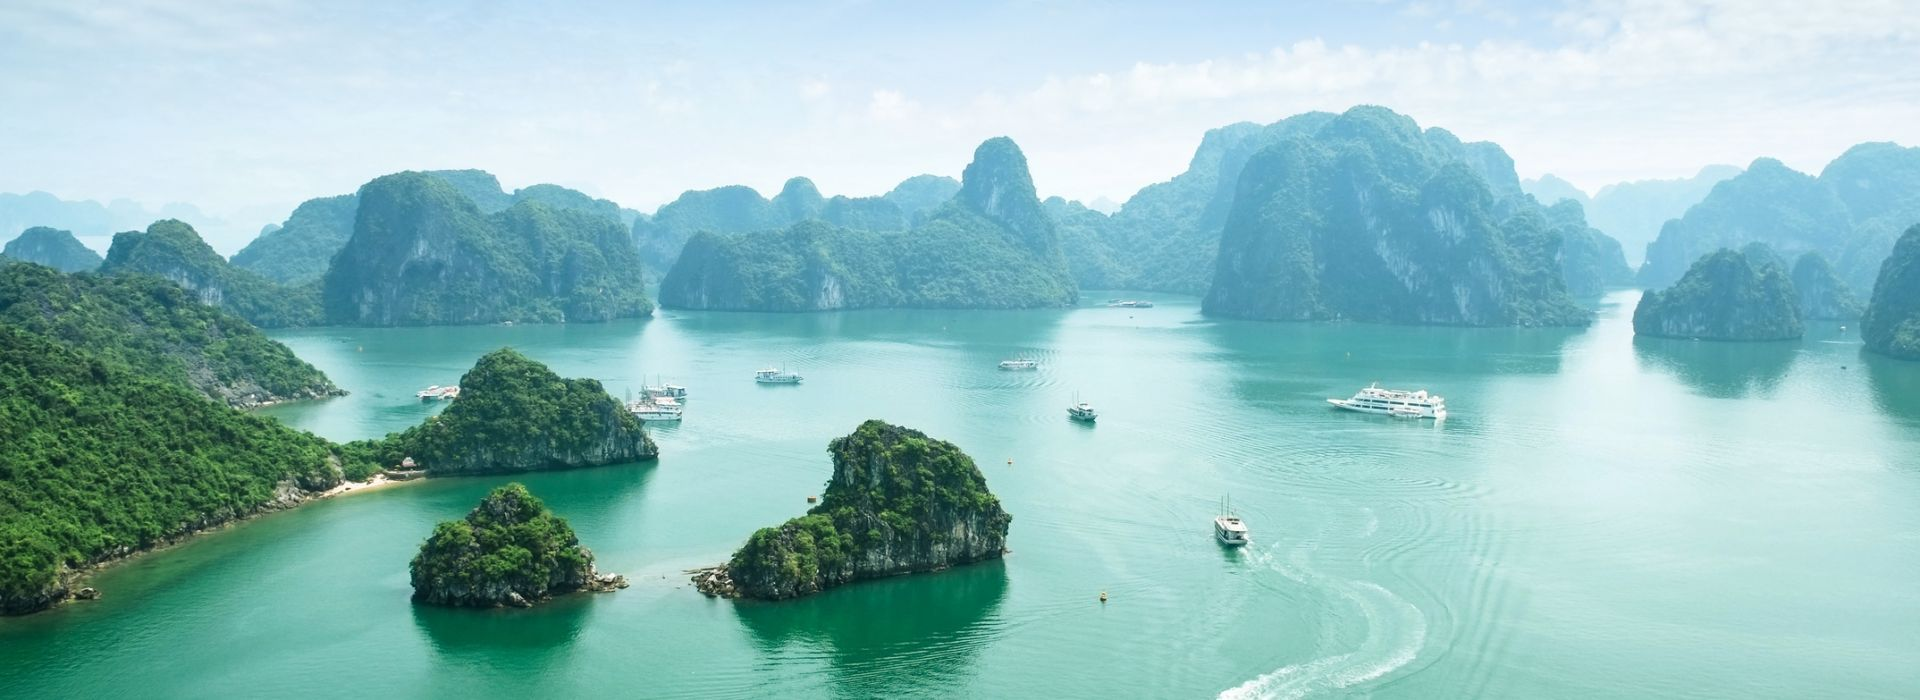 Sailing, yachting and motor boating Tours in Ninh Binh